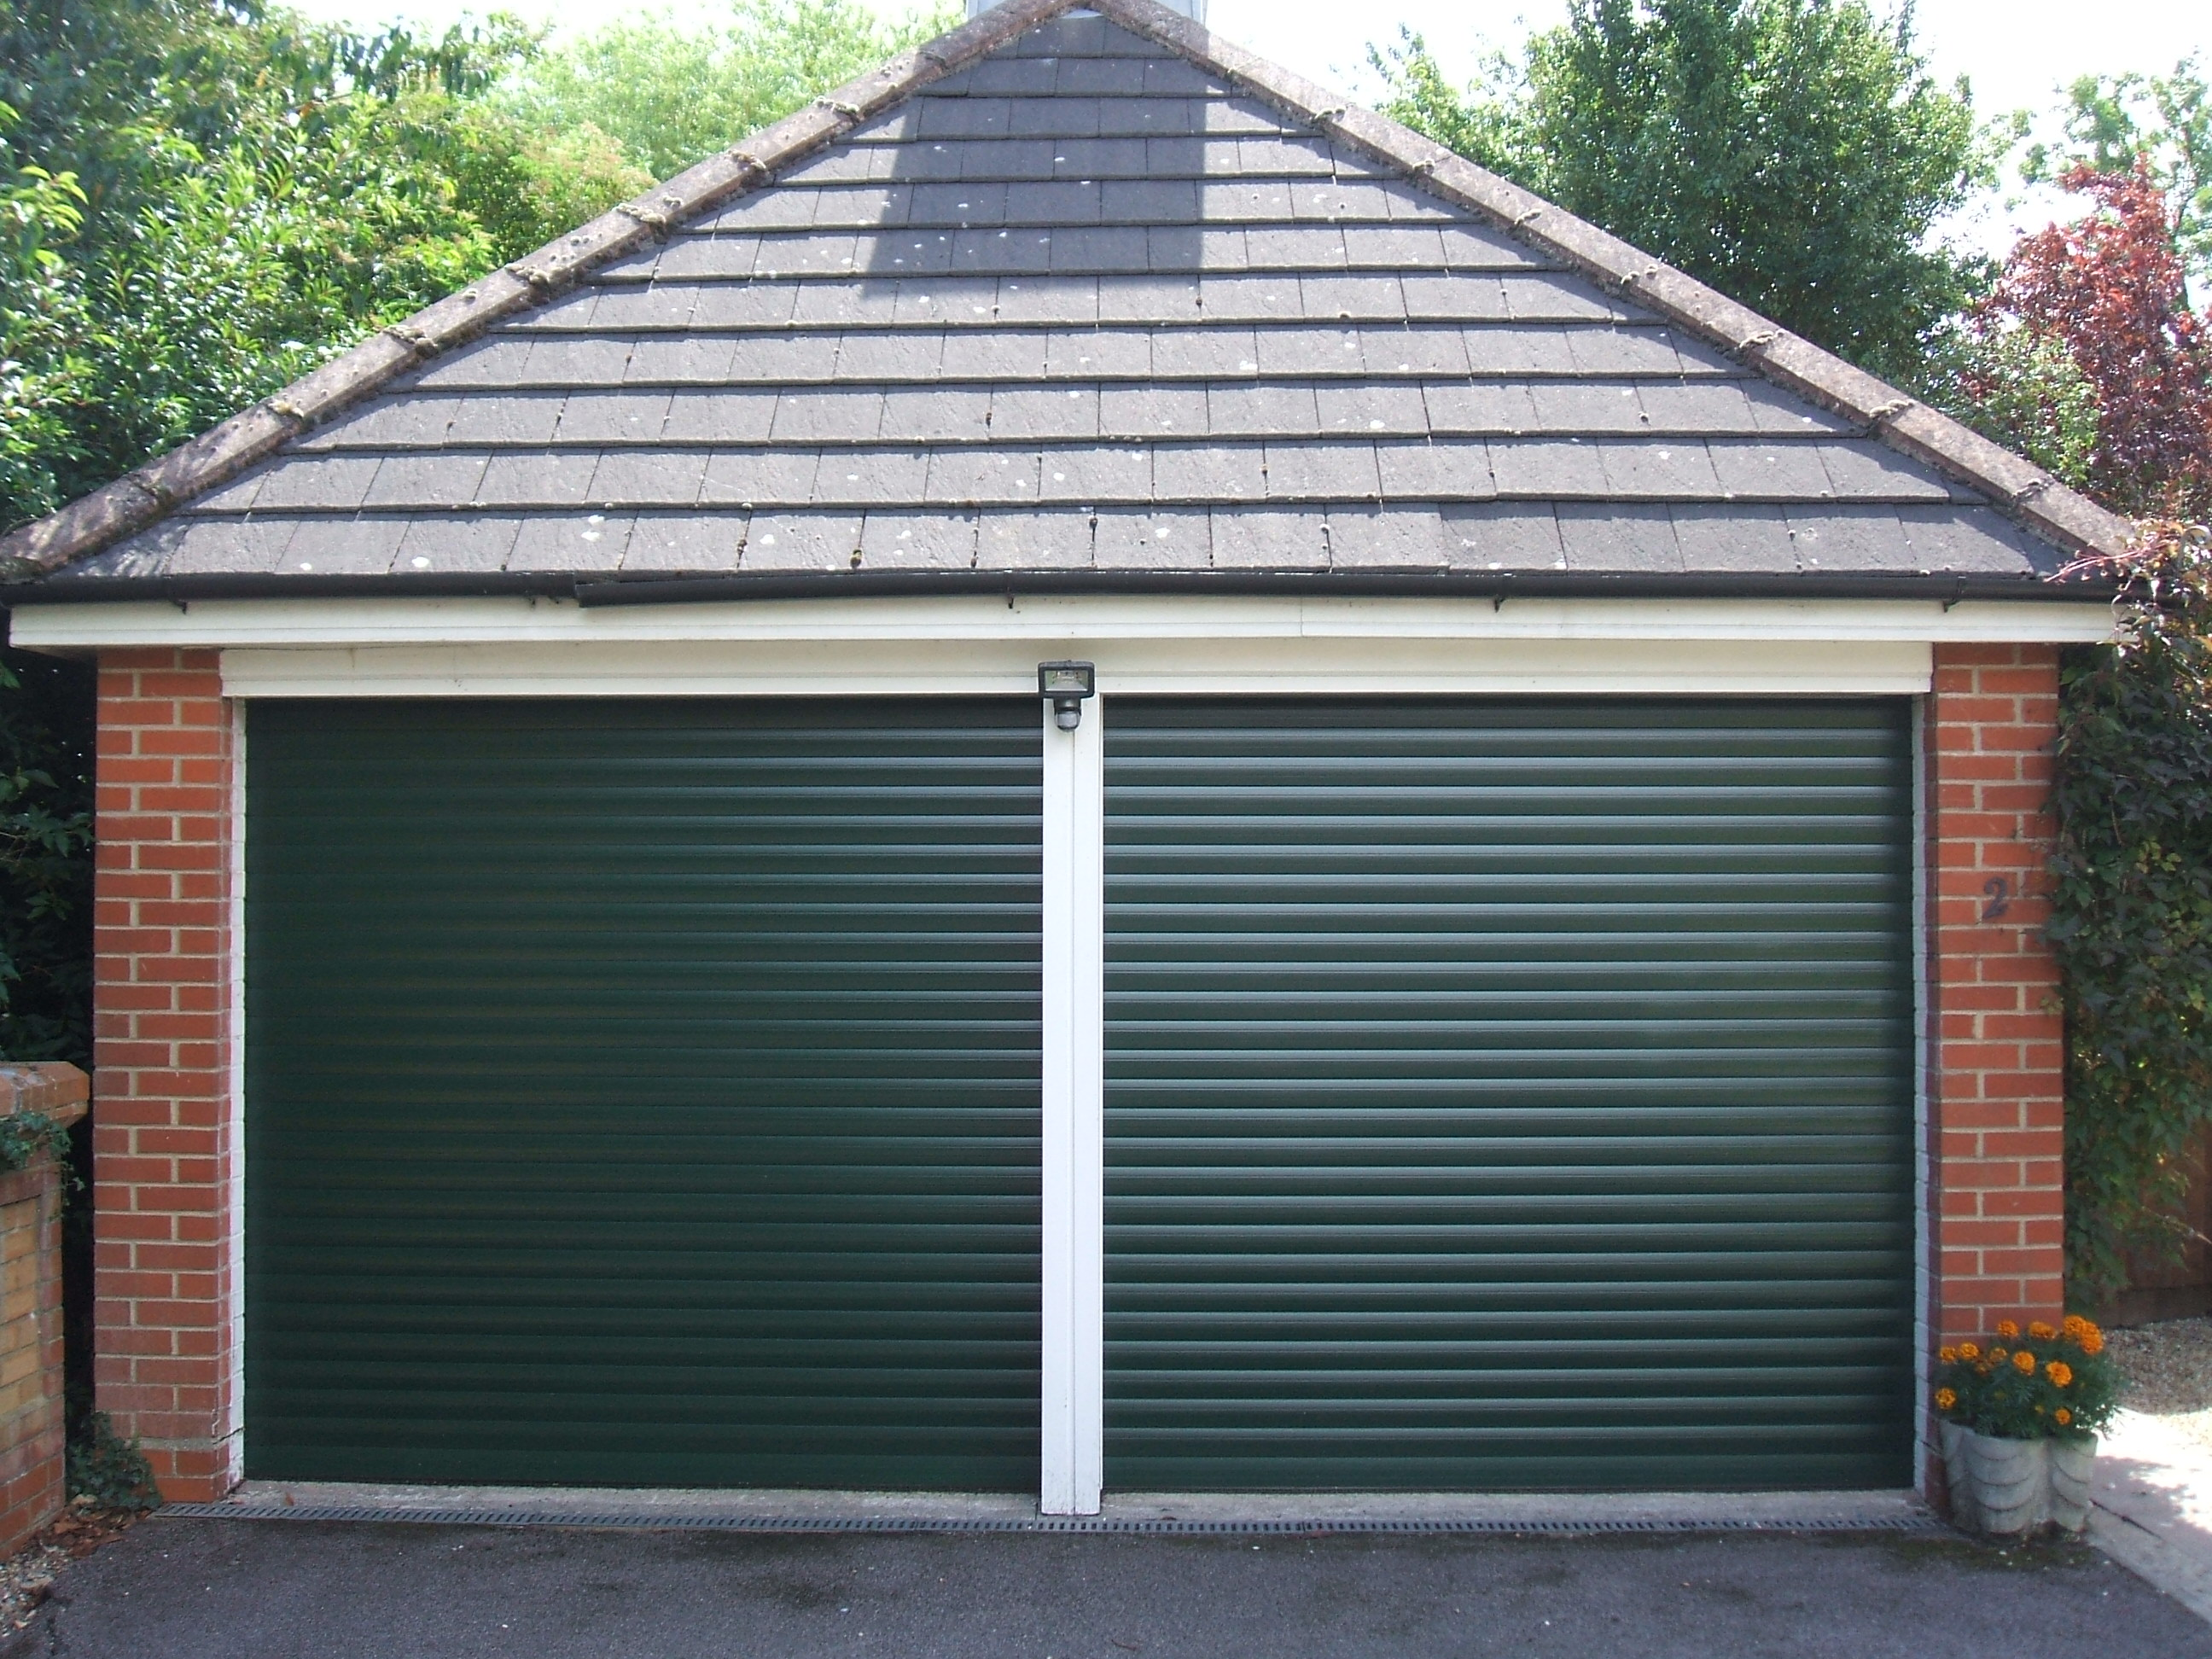 motor overhead door doors marvelous garage wooden appealing prices anadolukardiyolderg